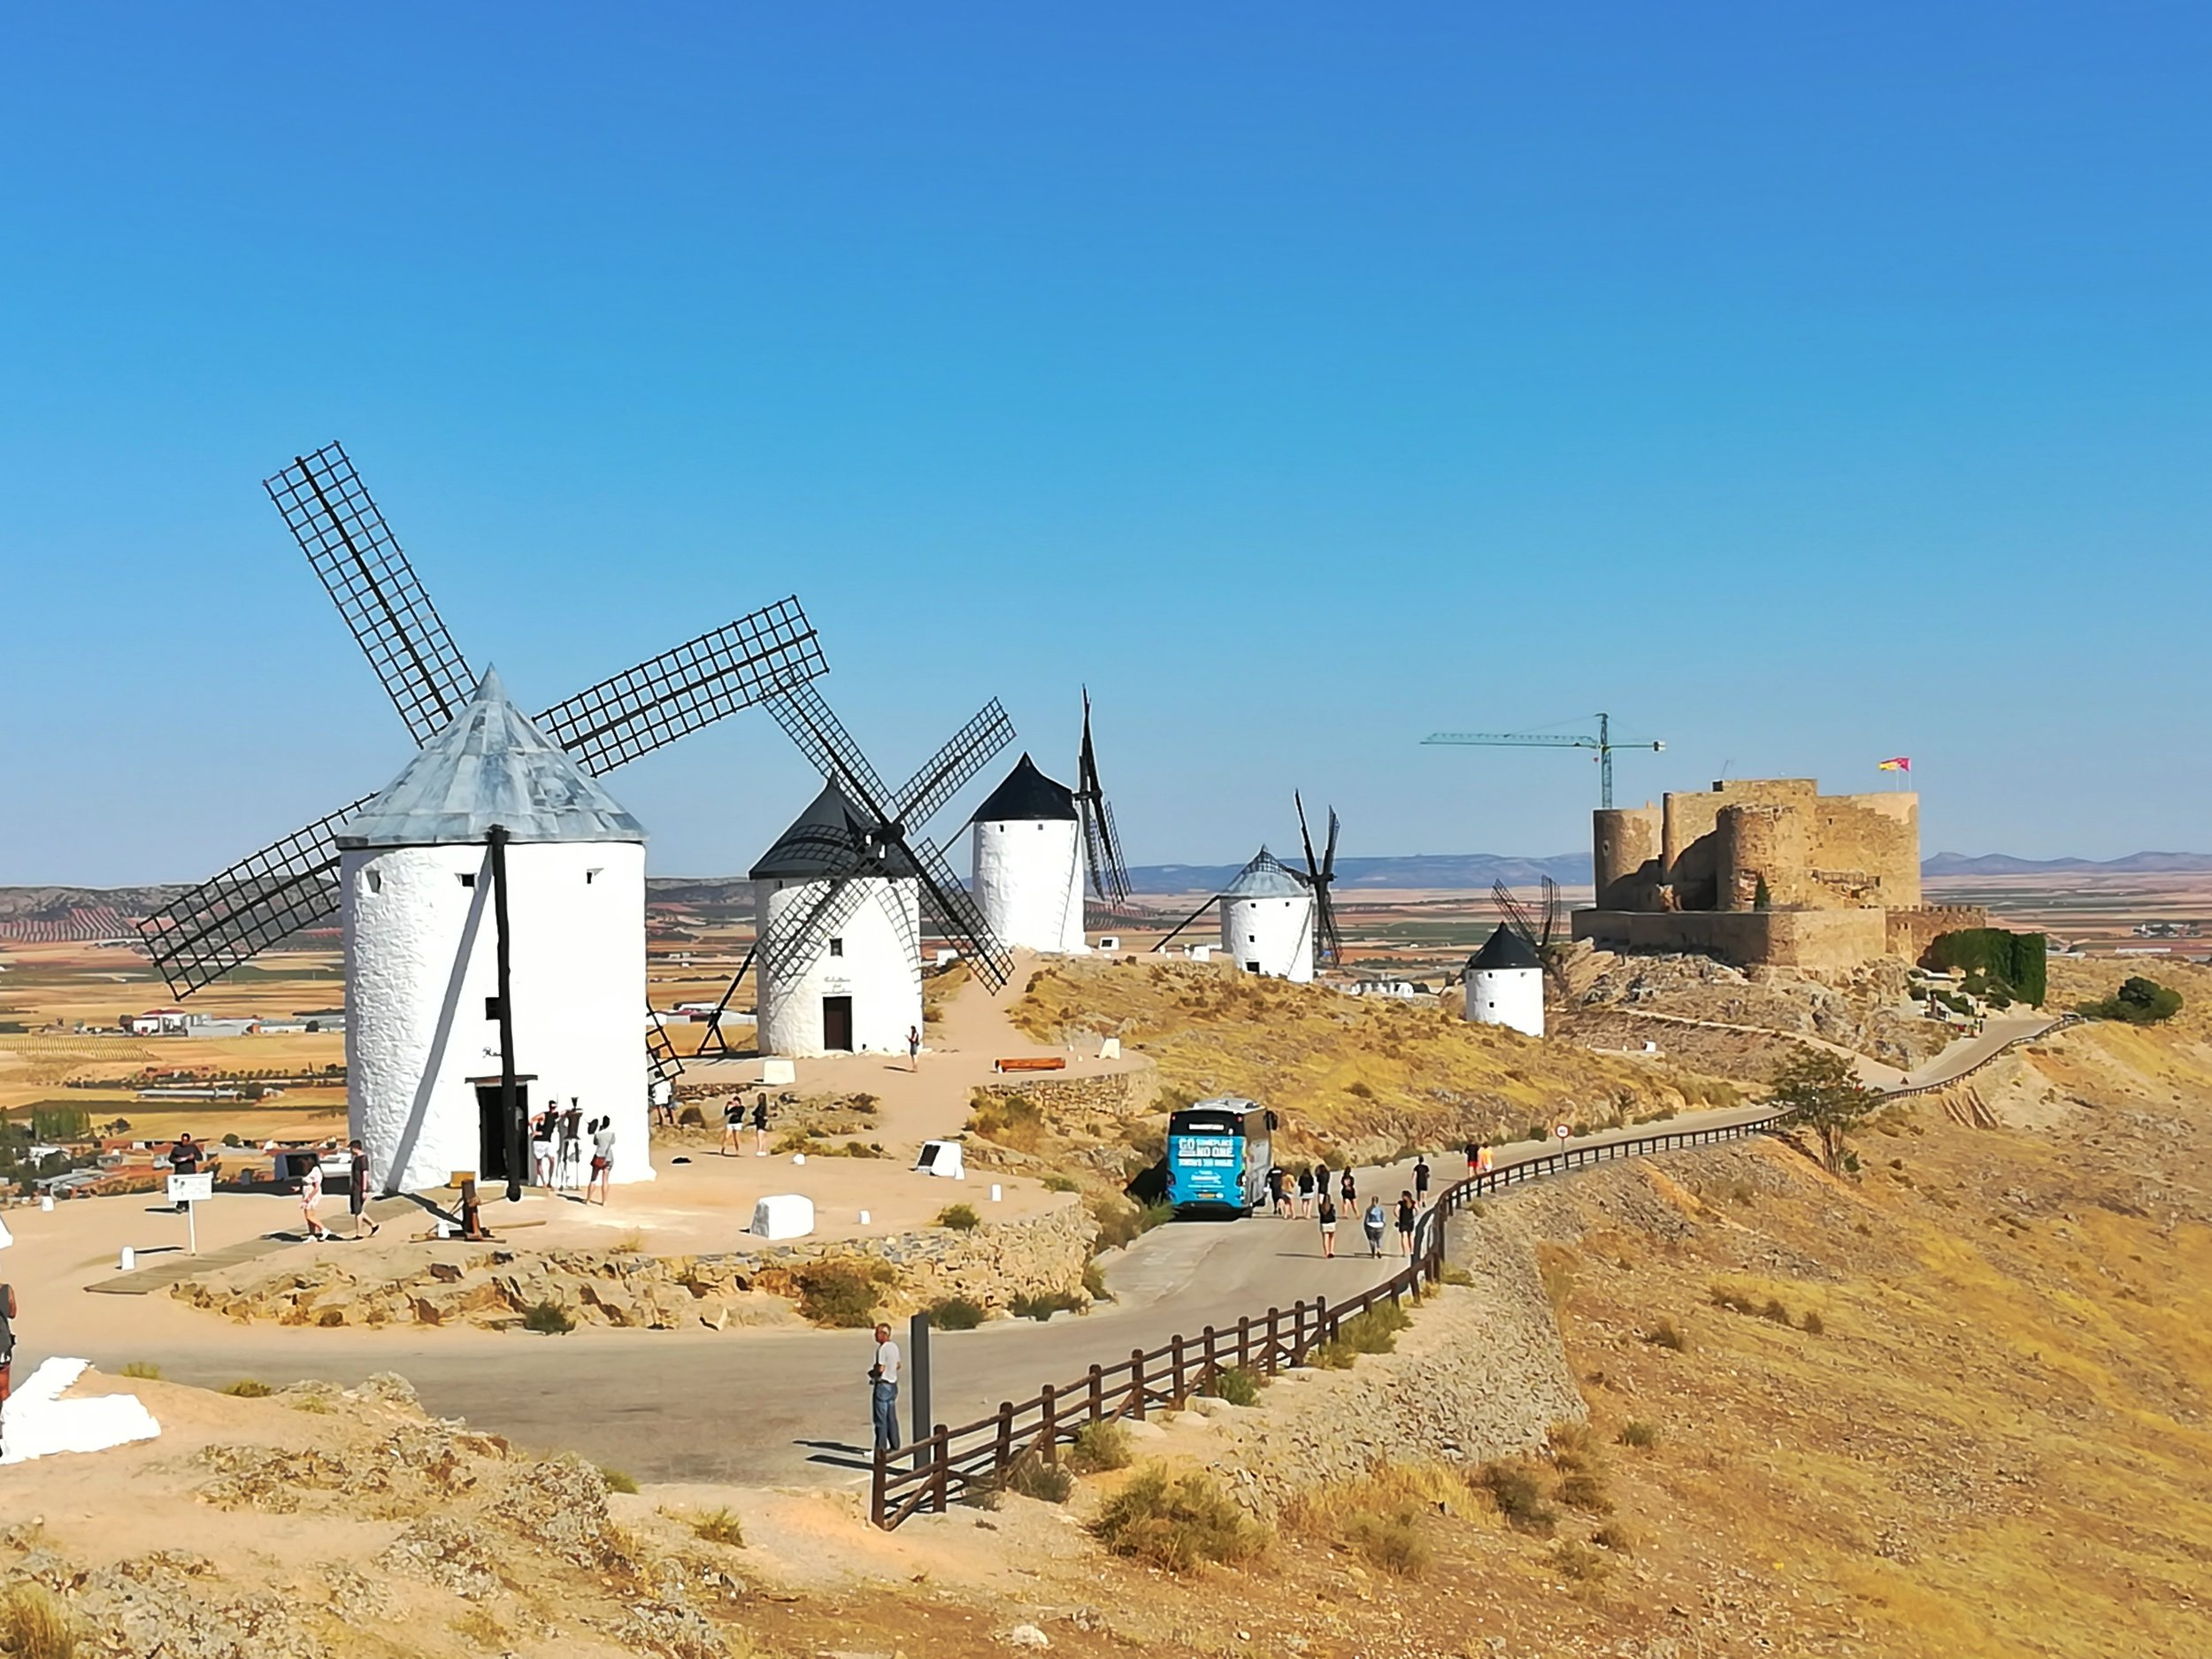 The windmills that looked like giants